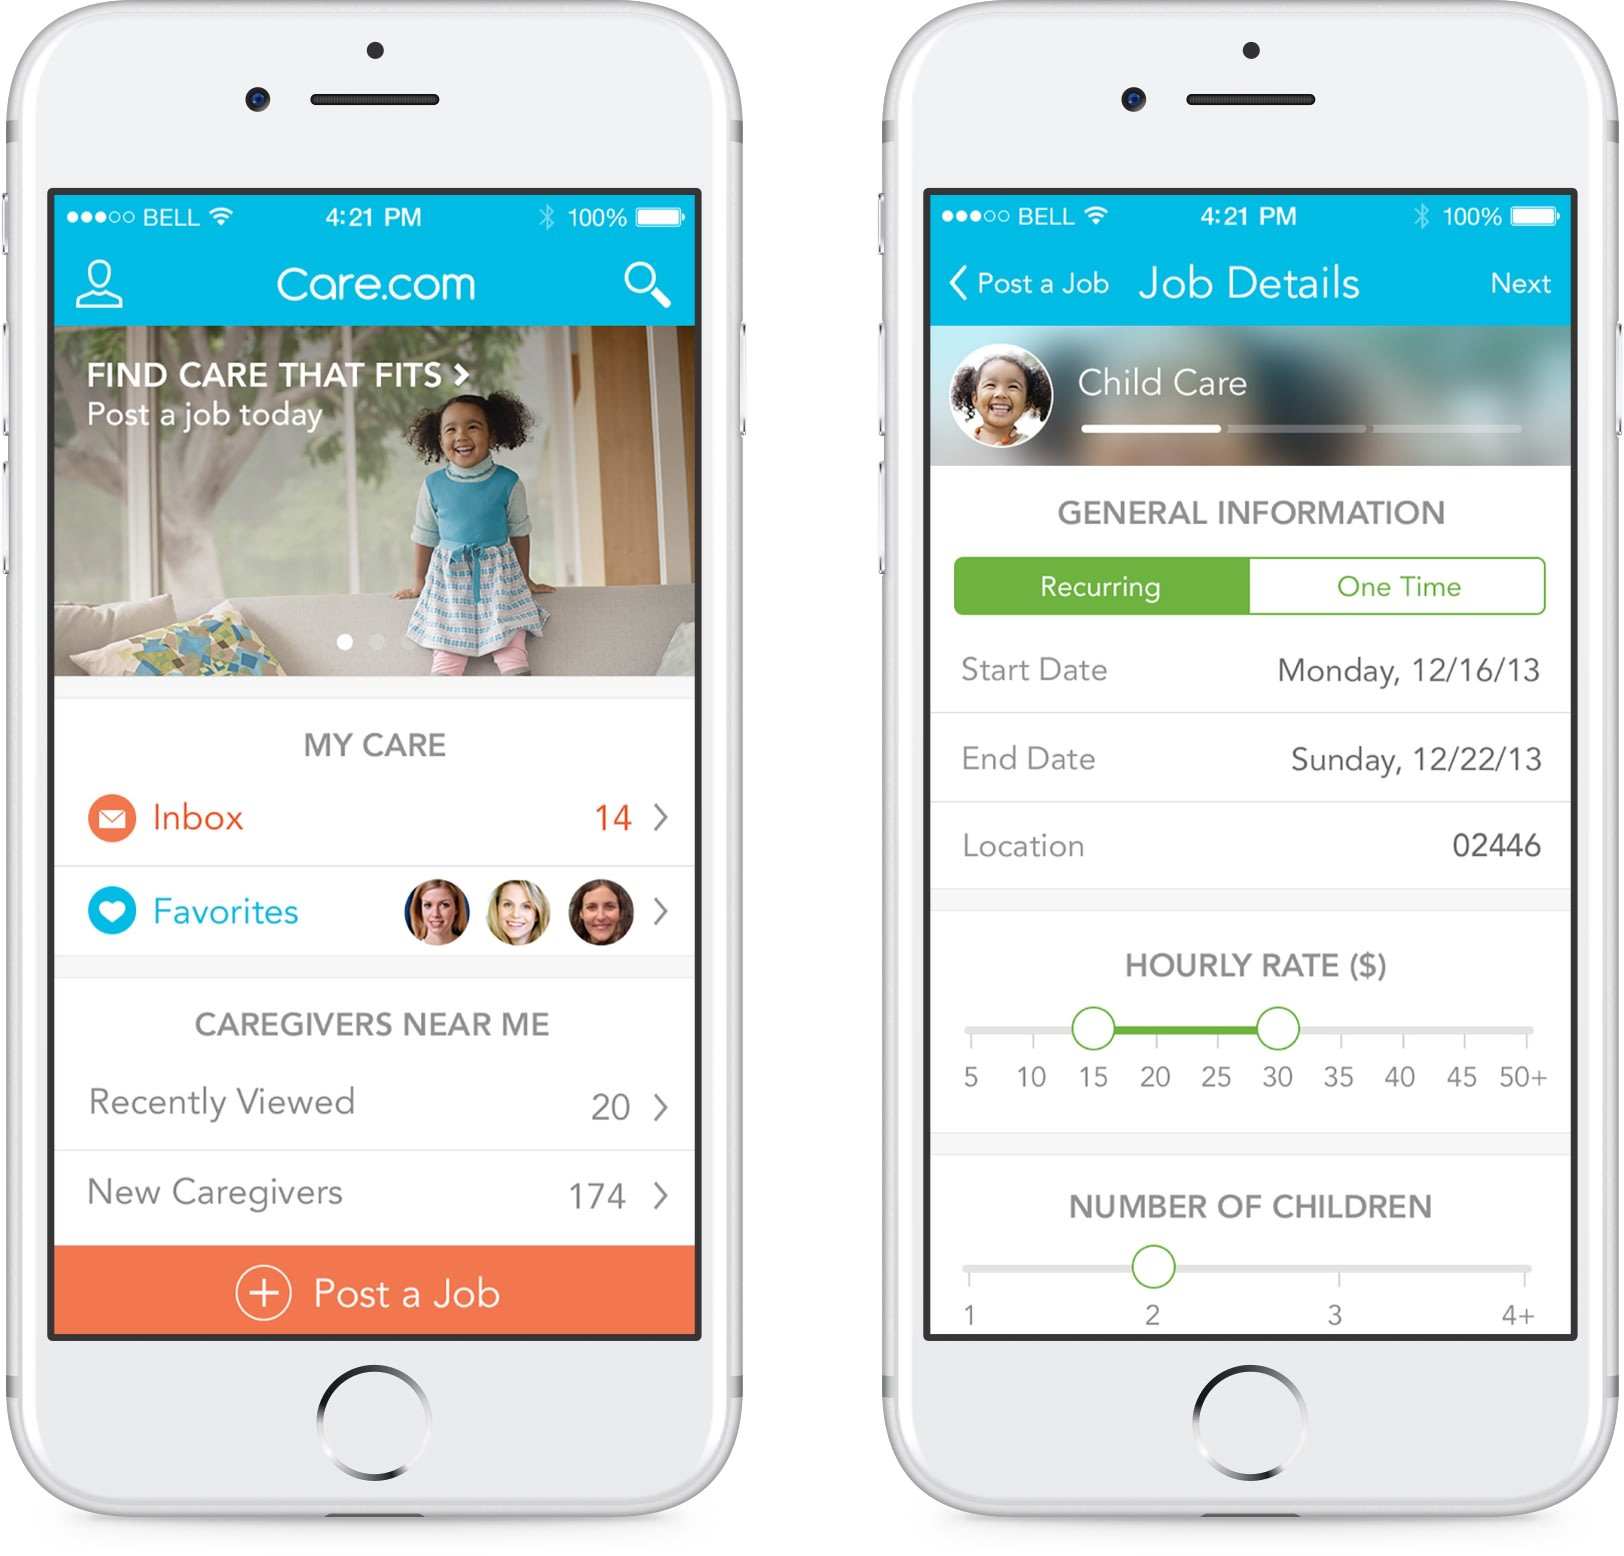 2 iPhones show the Care.com app and how users can select criteria for caregivers.